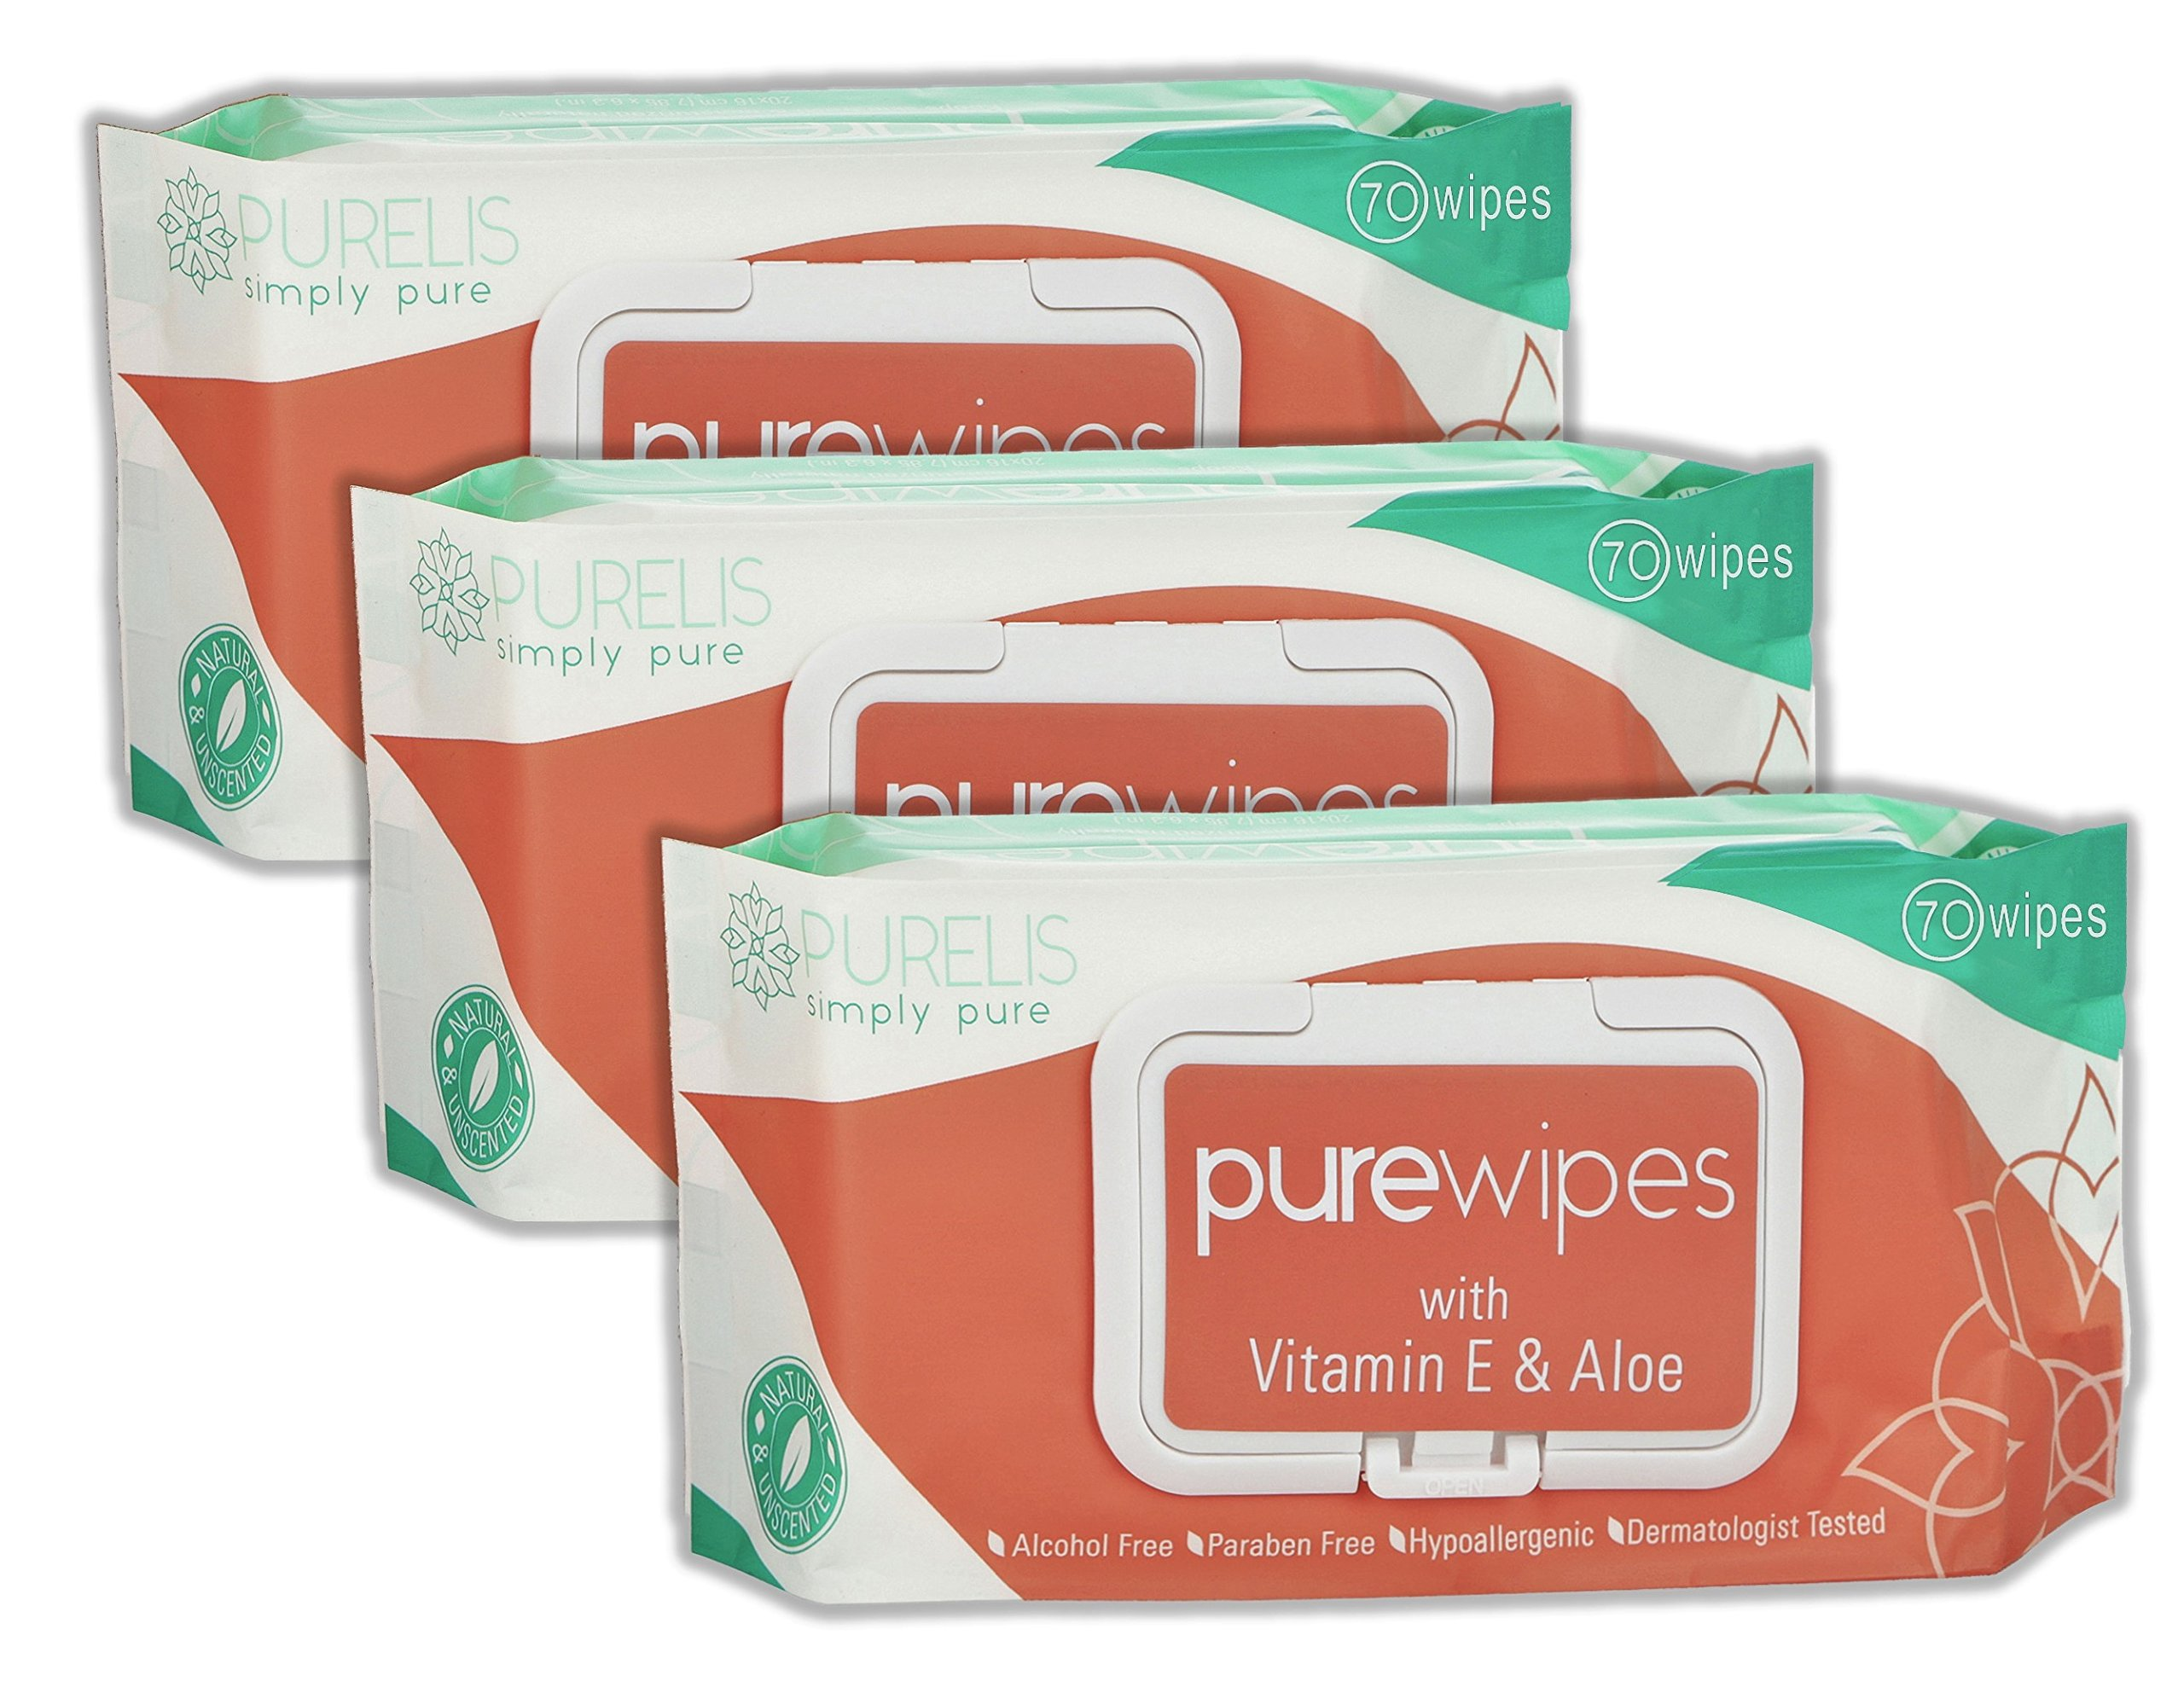 Natural Wet Wipes for Women & Kids -70 Sensitive Body Wipes for Intimate Care, Shower Wipes & Baby Wipes with Aloe Vera & Vitamin E! 3 Resealable Packs of Fresh Wipes on the Go!{210 Ultra Thick Wipes}